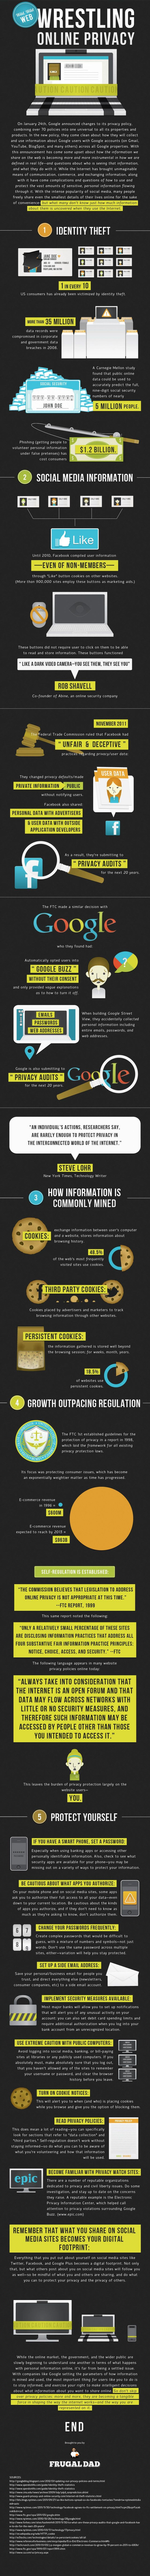 Google-Facebook-Online-Privacy-Infographic